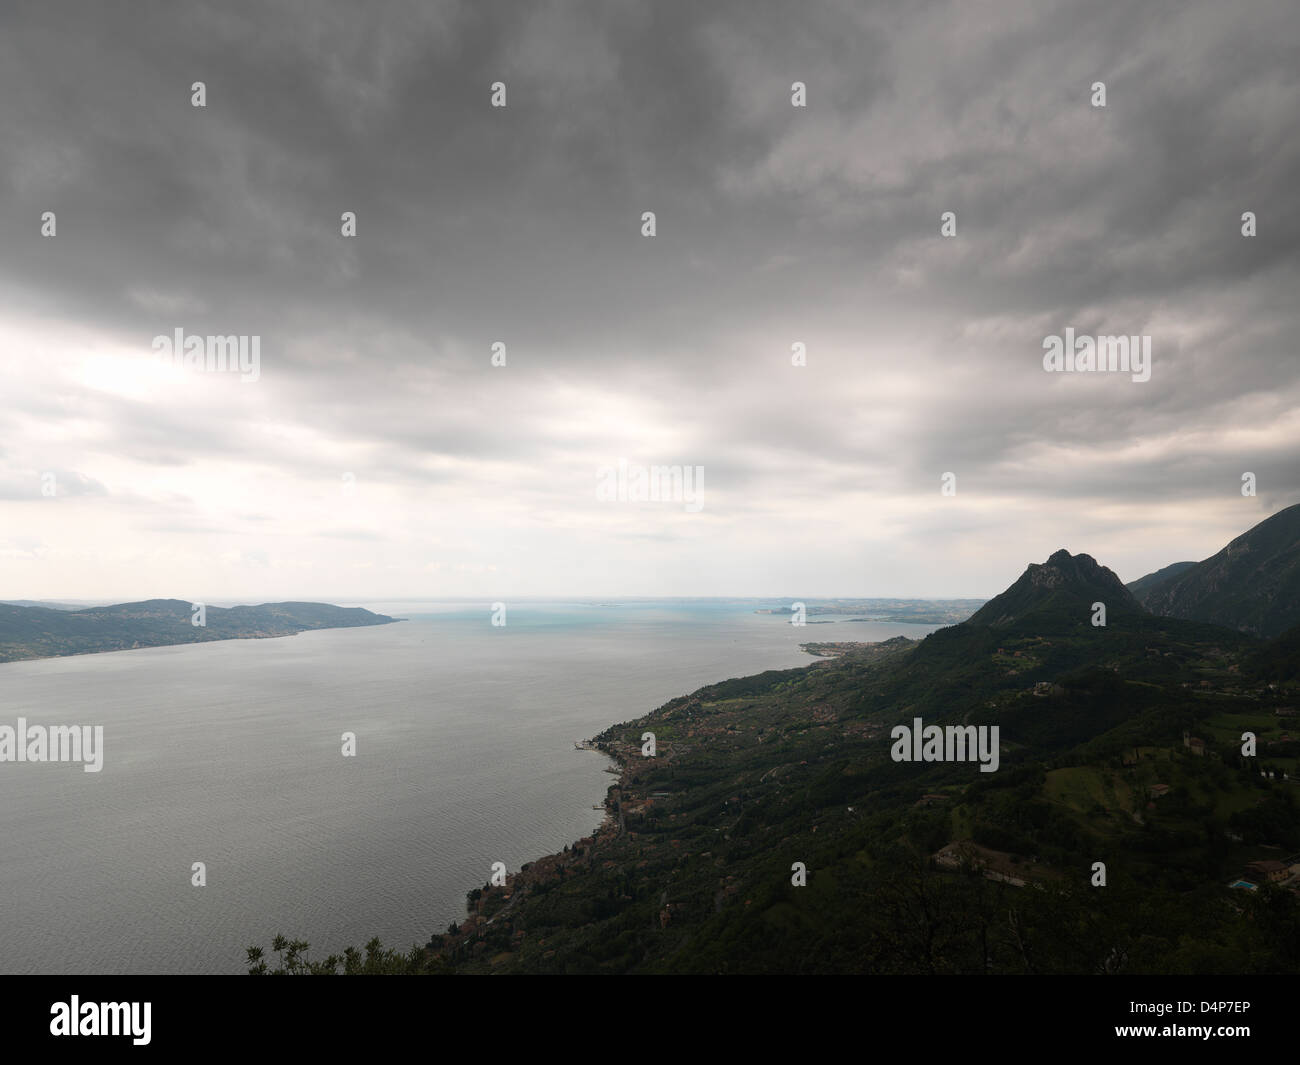 San Valentino, Italy, overlooking Lake Garda and just before a thunderstorm Stock Photo